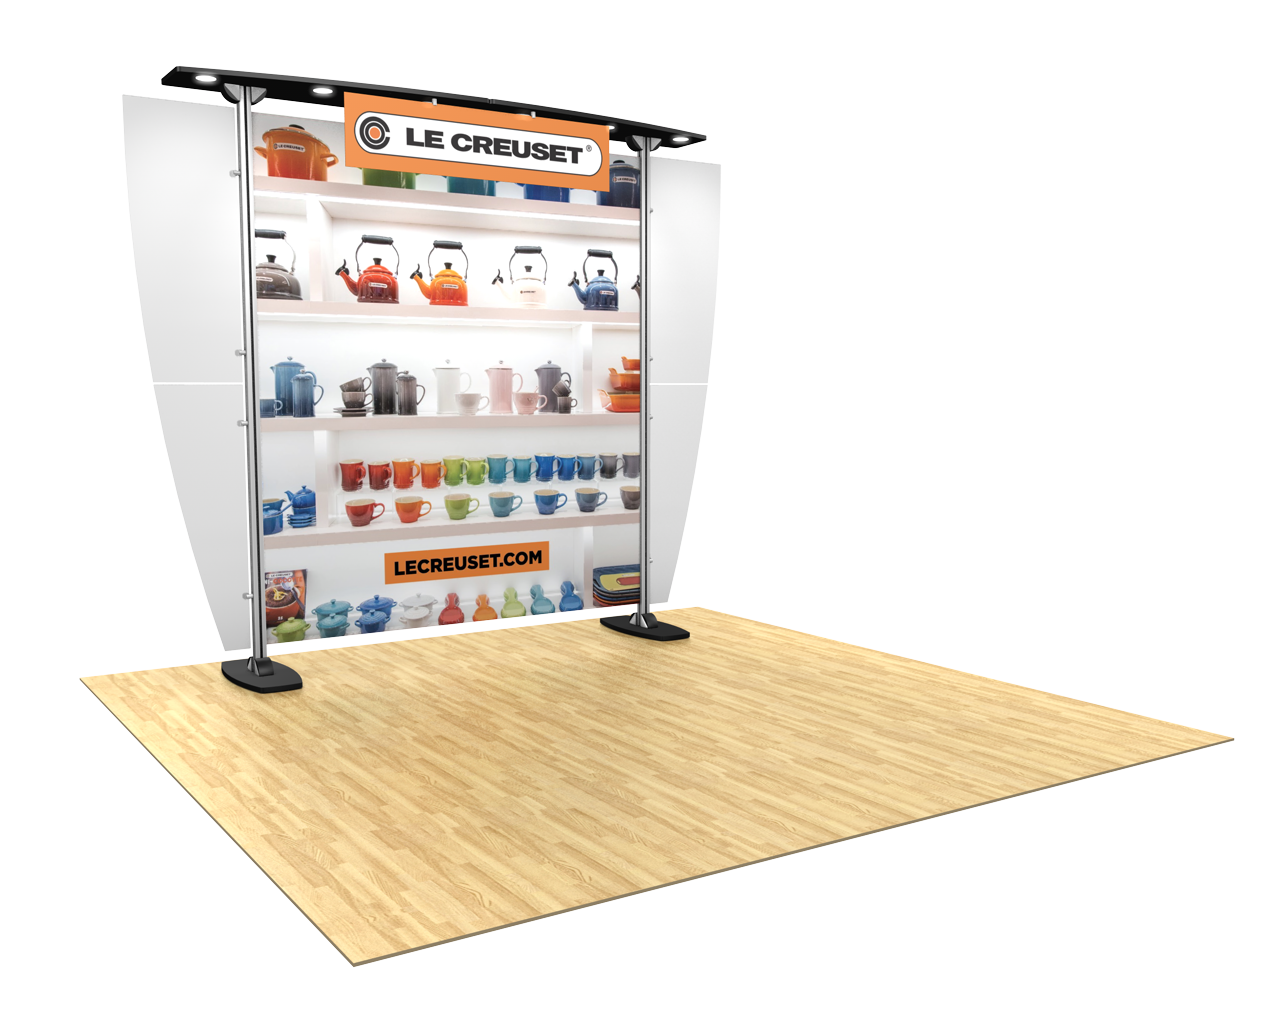 Exhibitline 10x10 Trade Show Display - ex1.0 Model